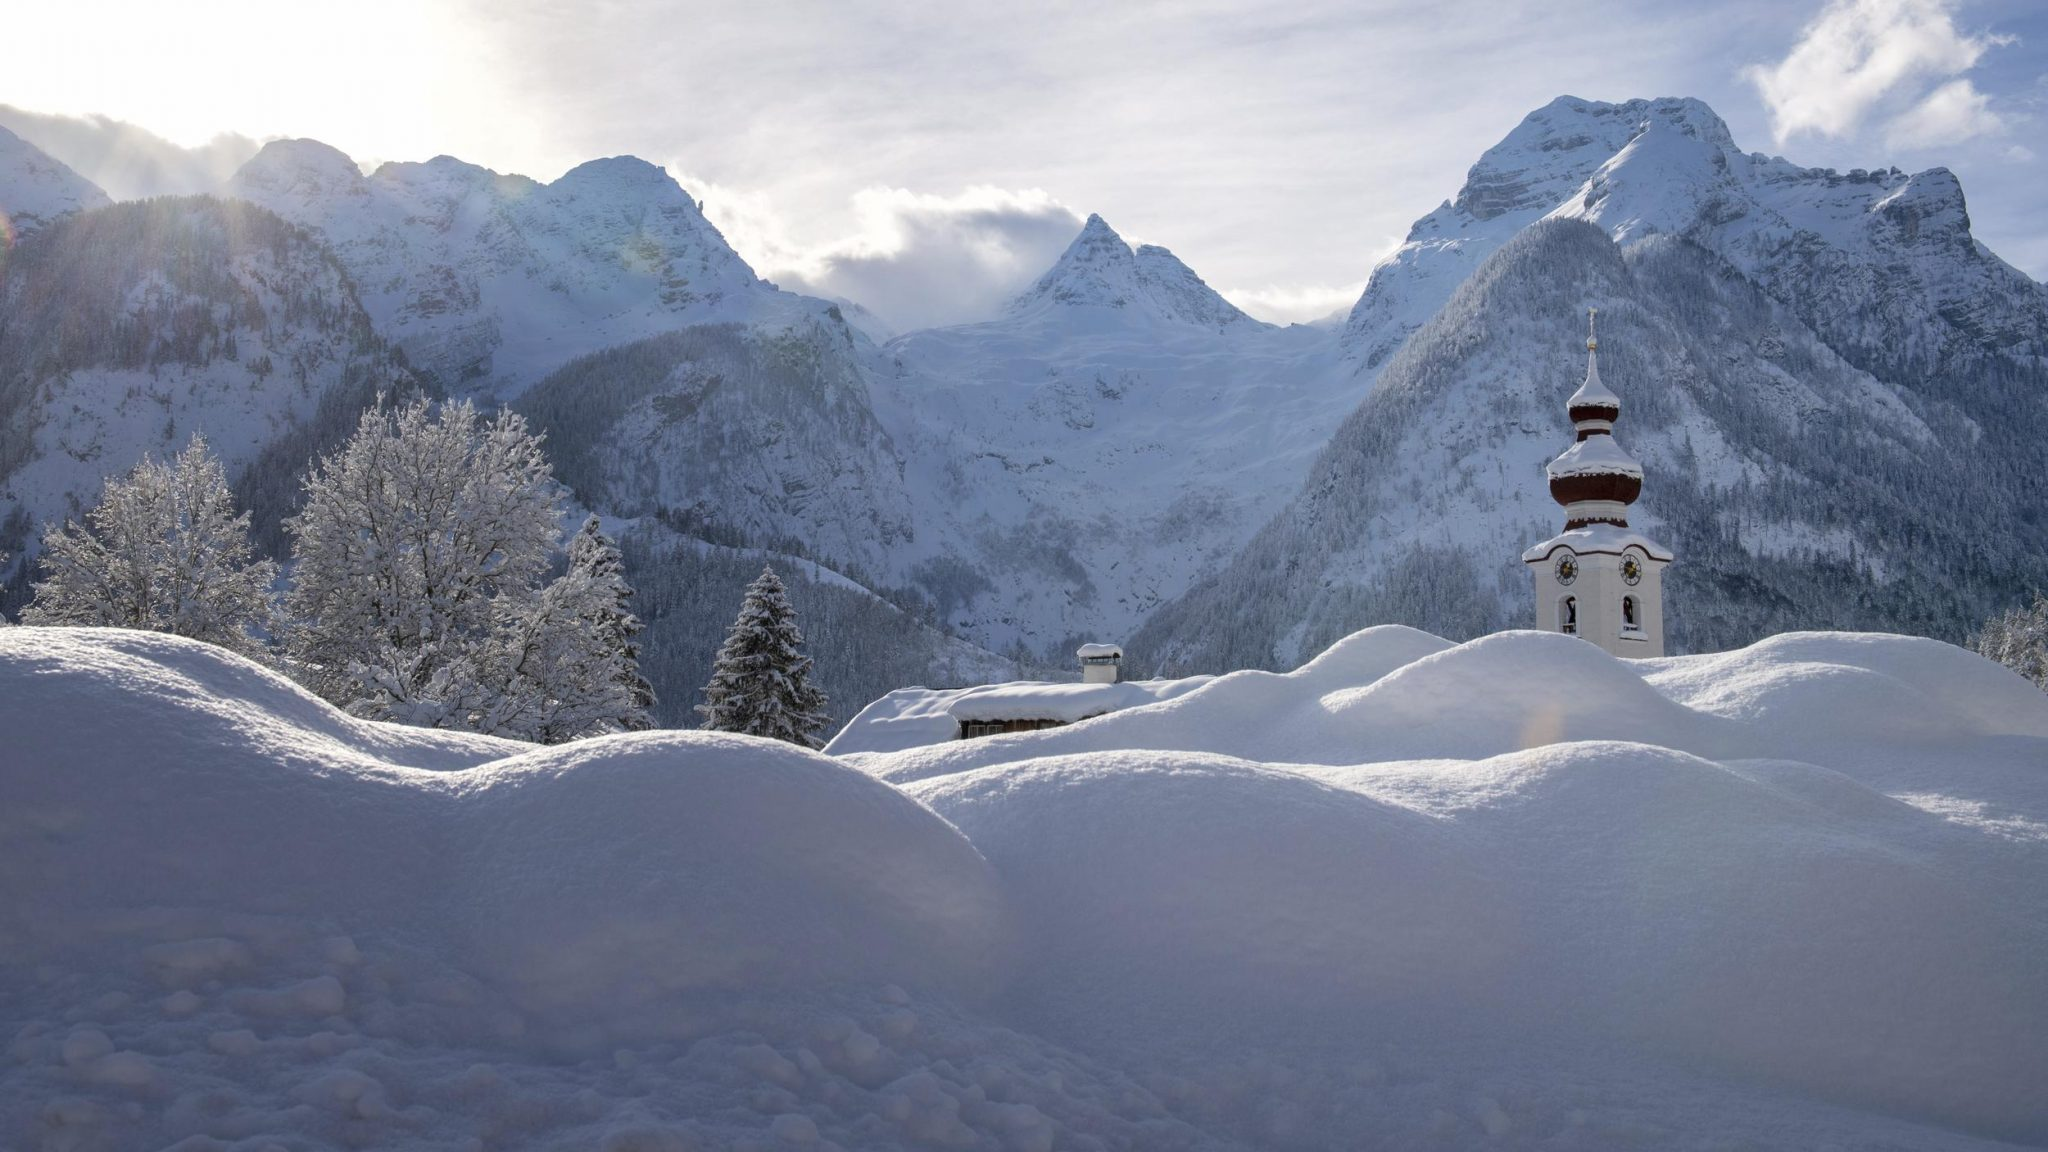 Austria Avalanche Kills 3; Ski Patrollers Killed In France